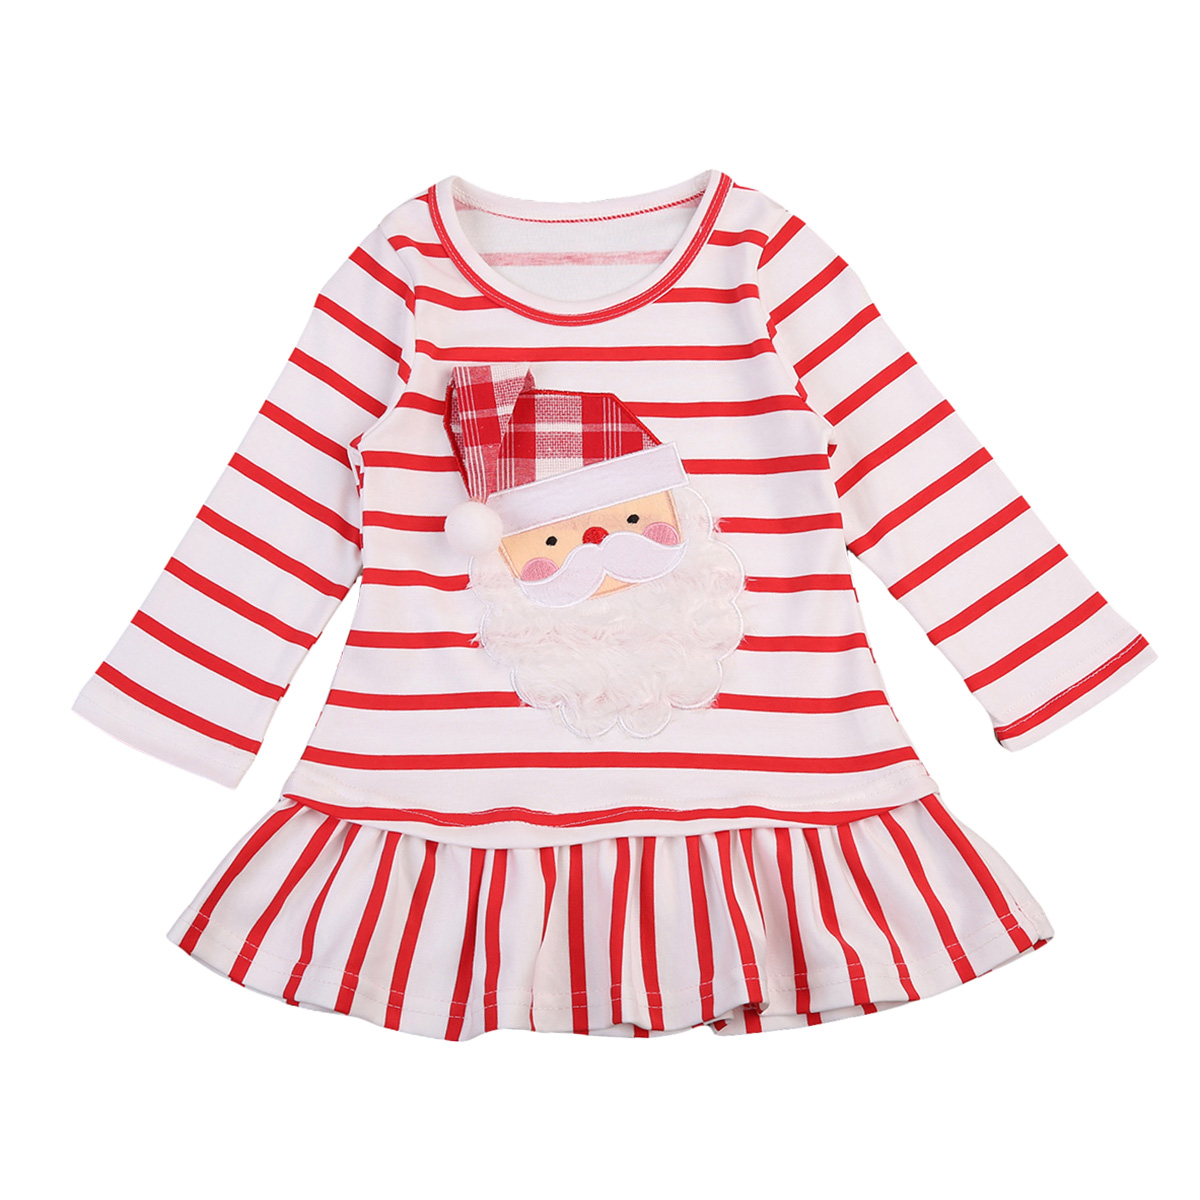 New Baby Girls Christmas Santa Claus Little Girls Cute Casual Xmas Striped Dress Clothes 0-5Y фигурка декоративная crystocraft варежка 3 5 3 5 5 см